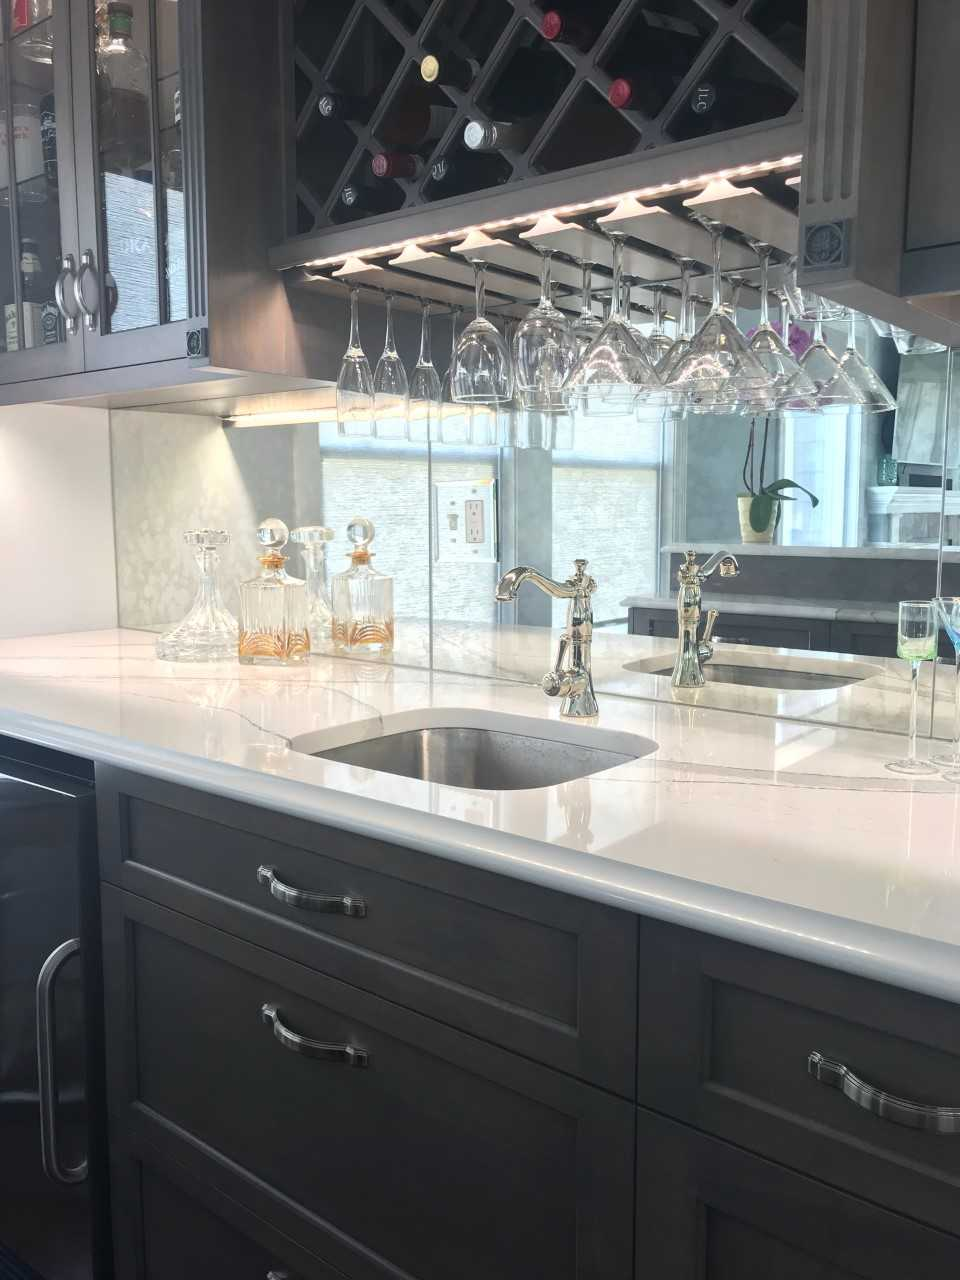 Mirrored Backsplash Beach Bar | Cape May NJ | Distinctive Interior Designs